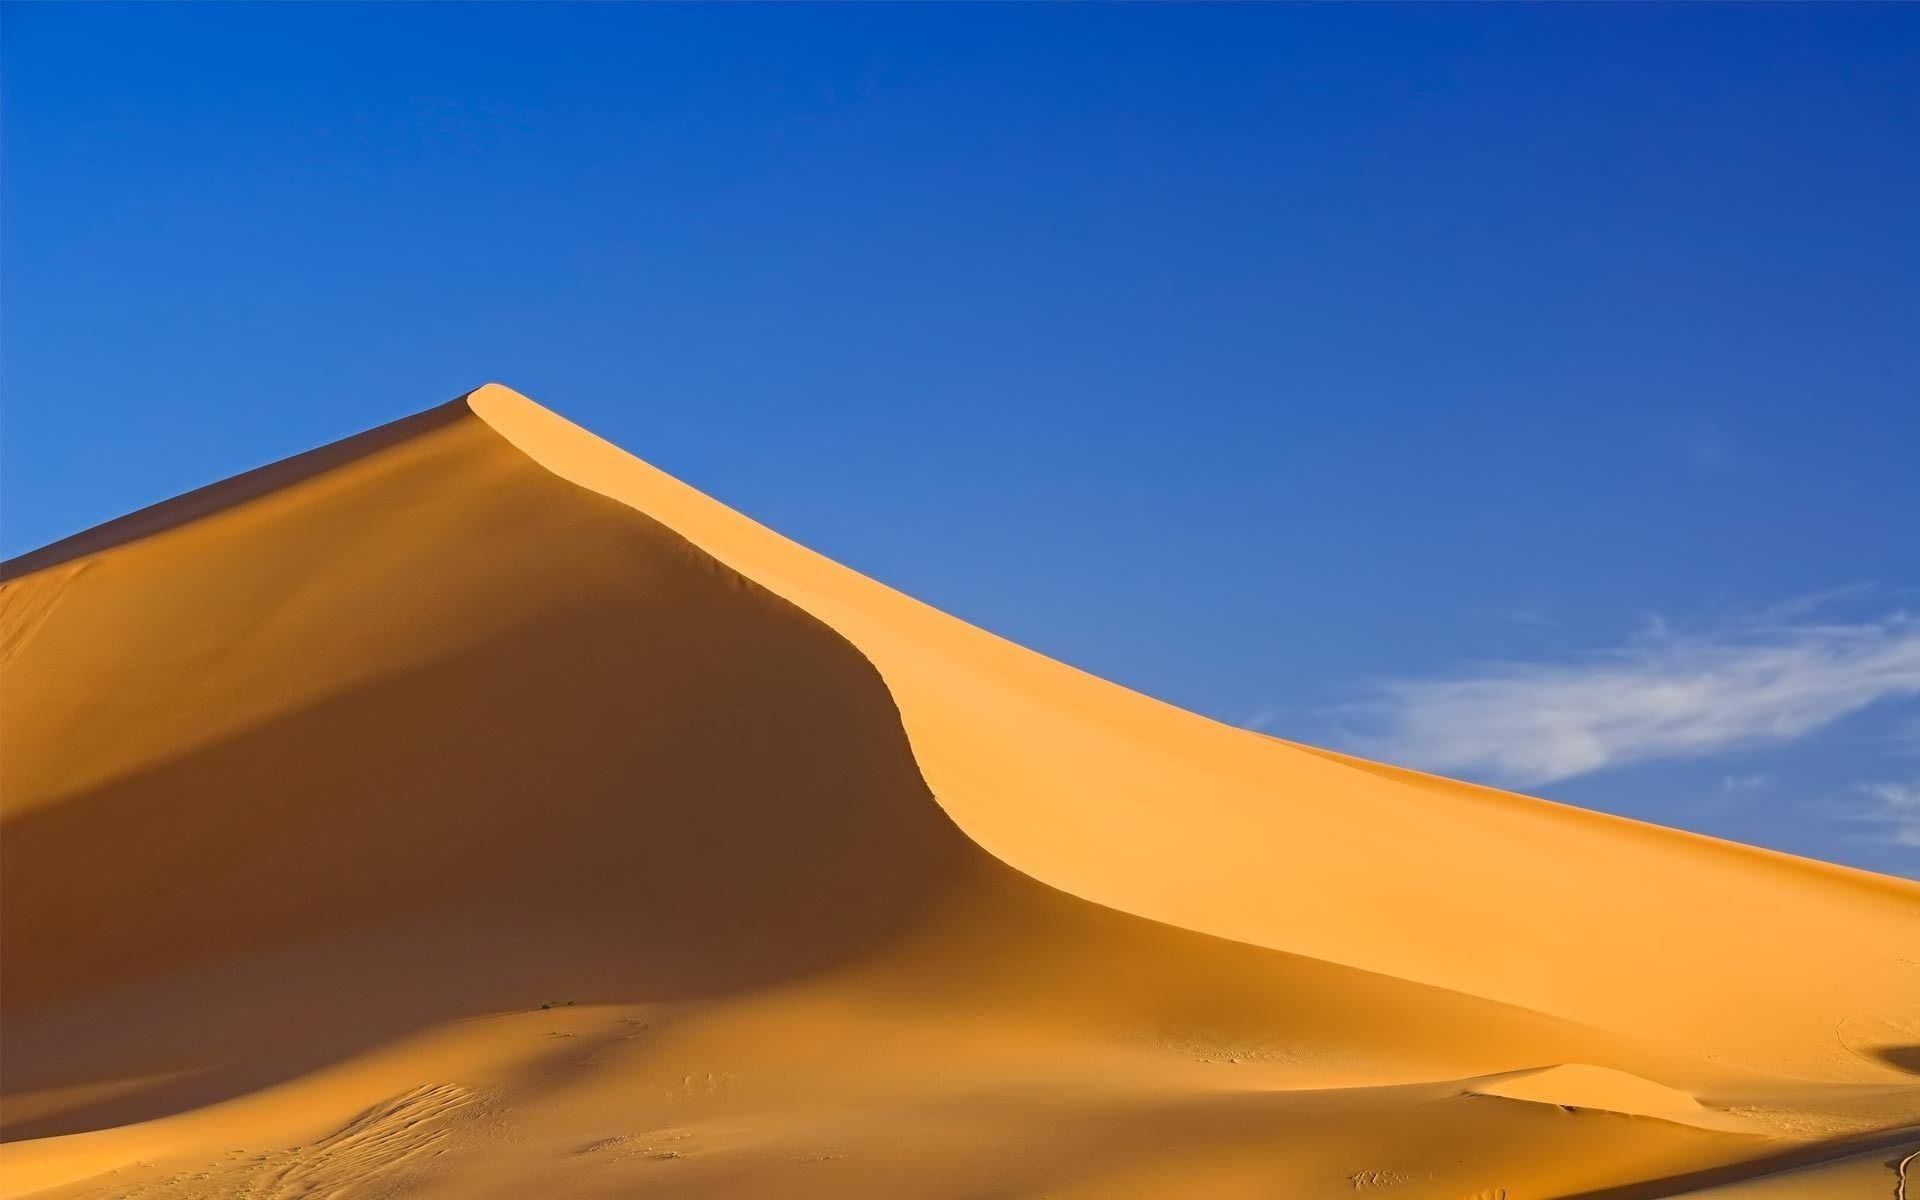 Sand dune wallpapers #